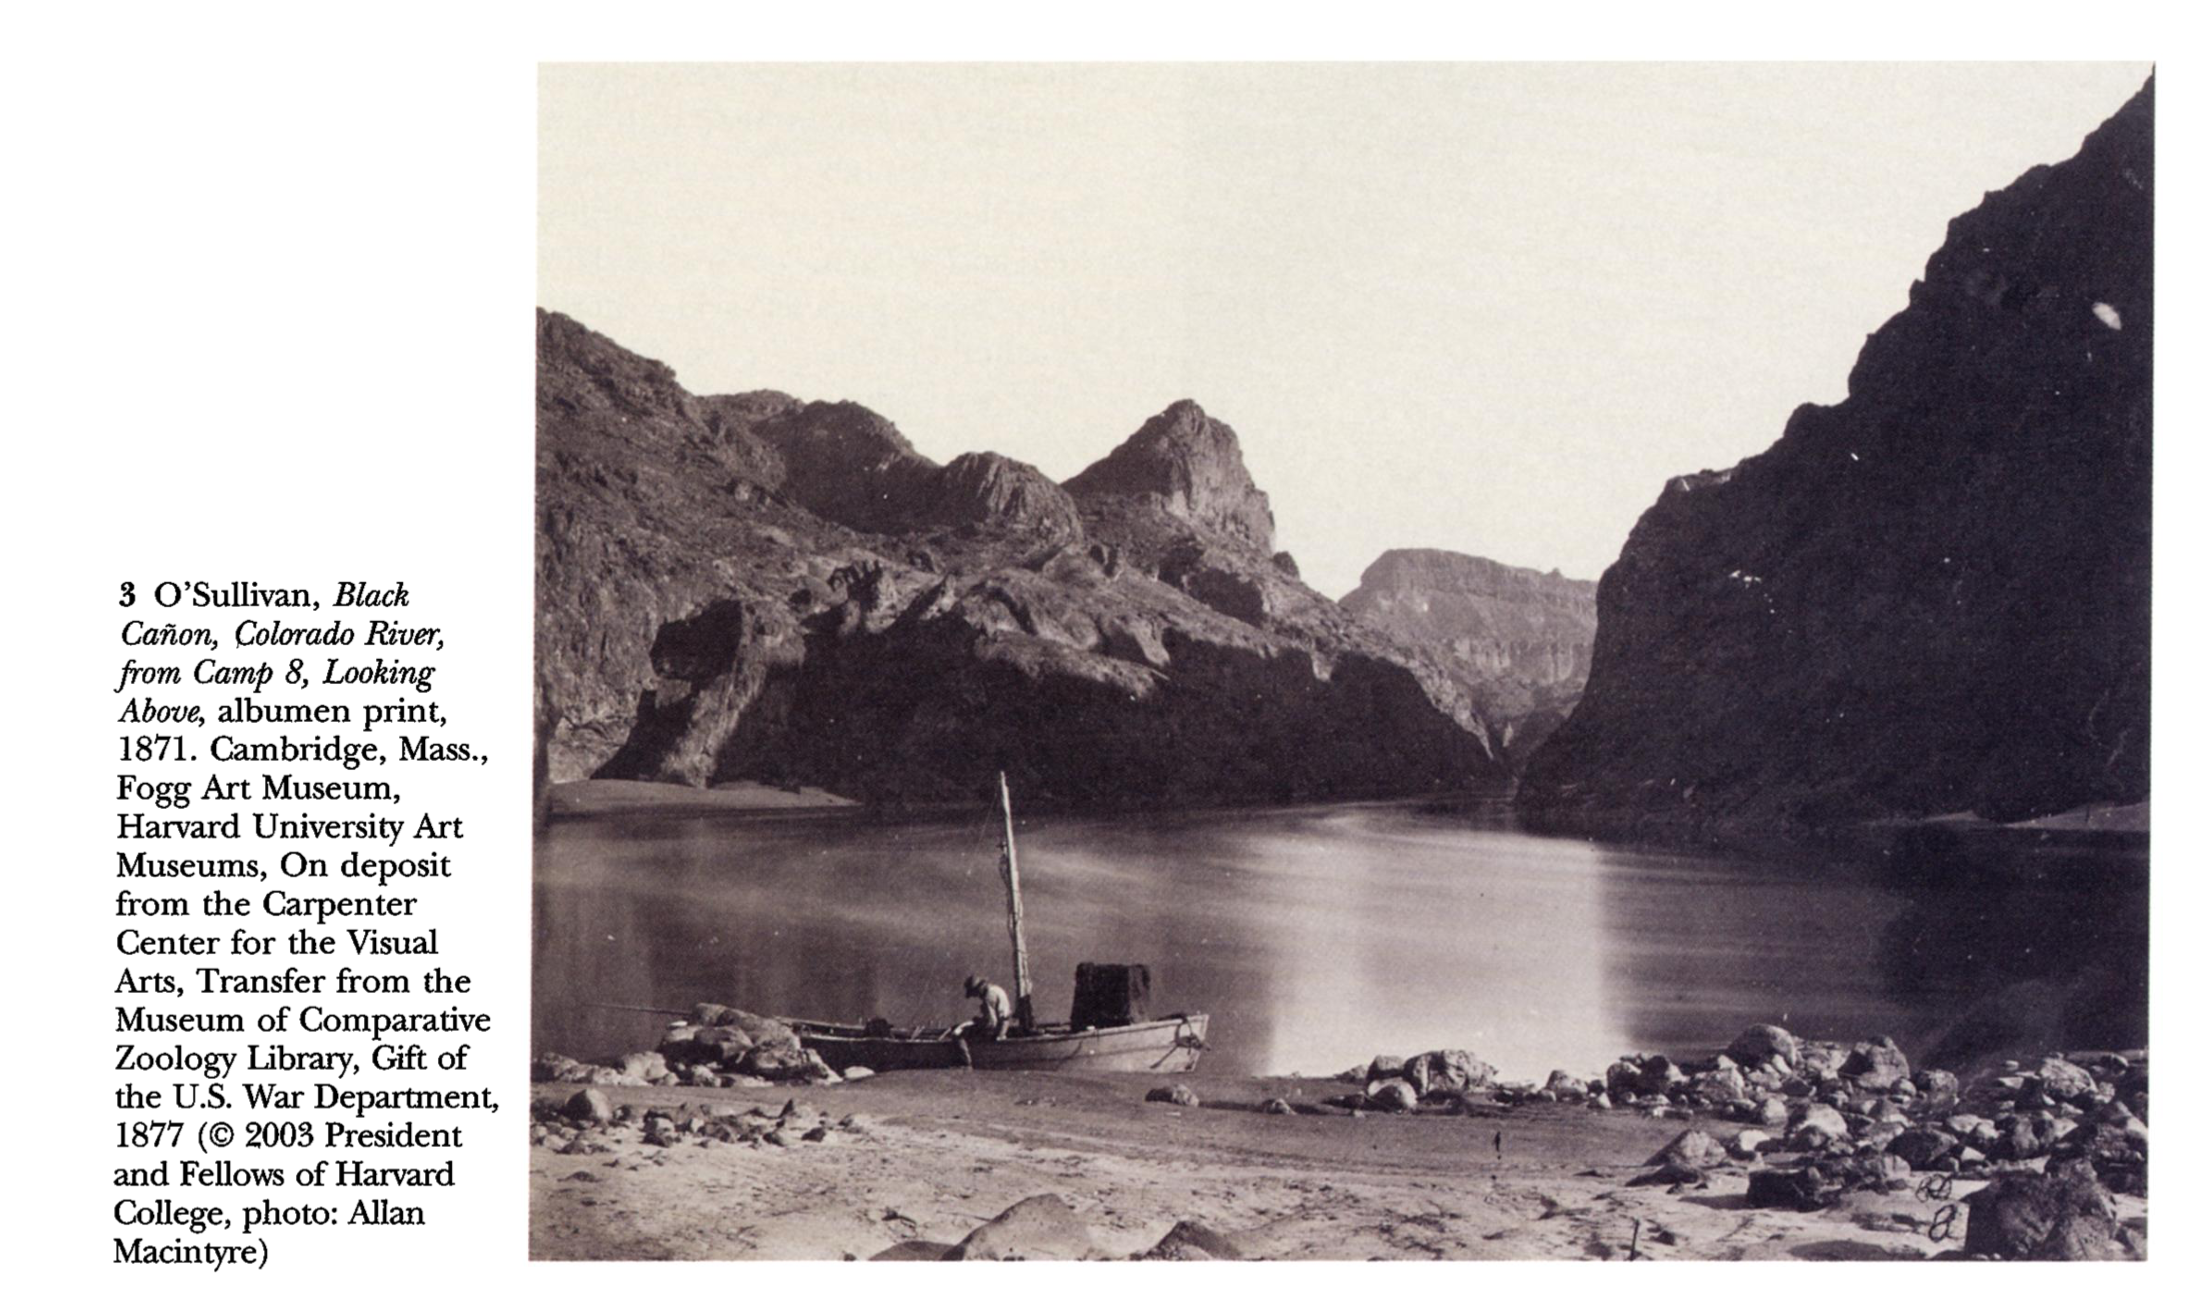 """From Robin E. Kelsey, """"Viewing the Archive: Timothy O'Sullivan's Photographs for the Wheeler Survey, 1871-74."""" Art Bulletin 65 (Dec 2003), pp. 702-723"""